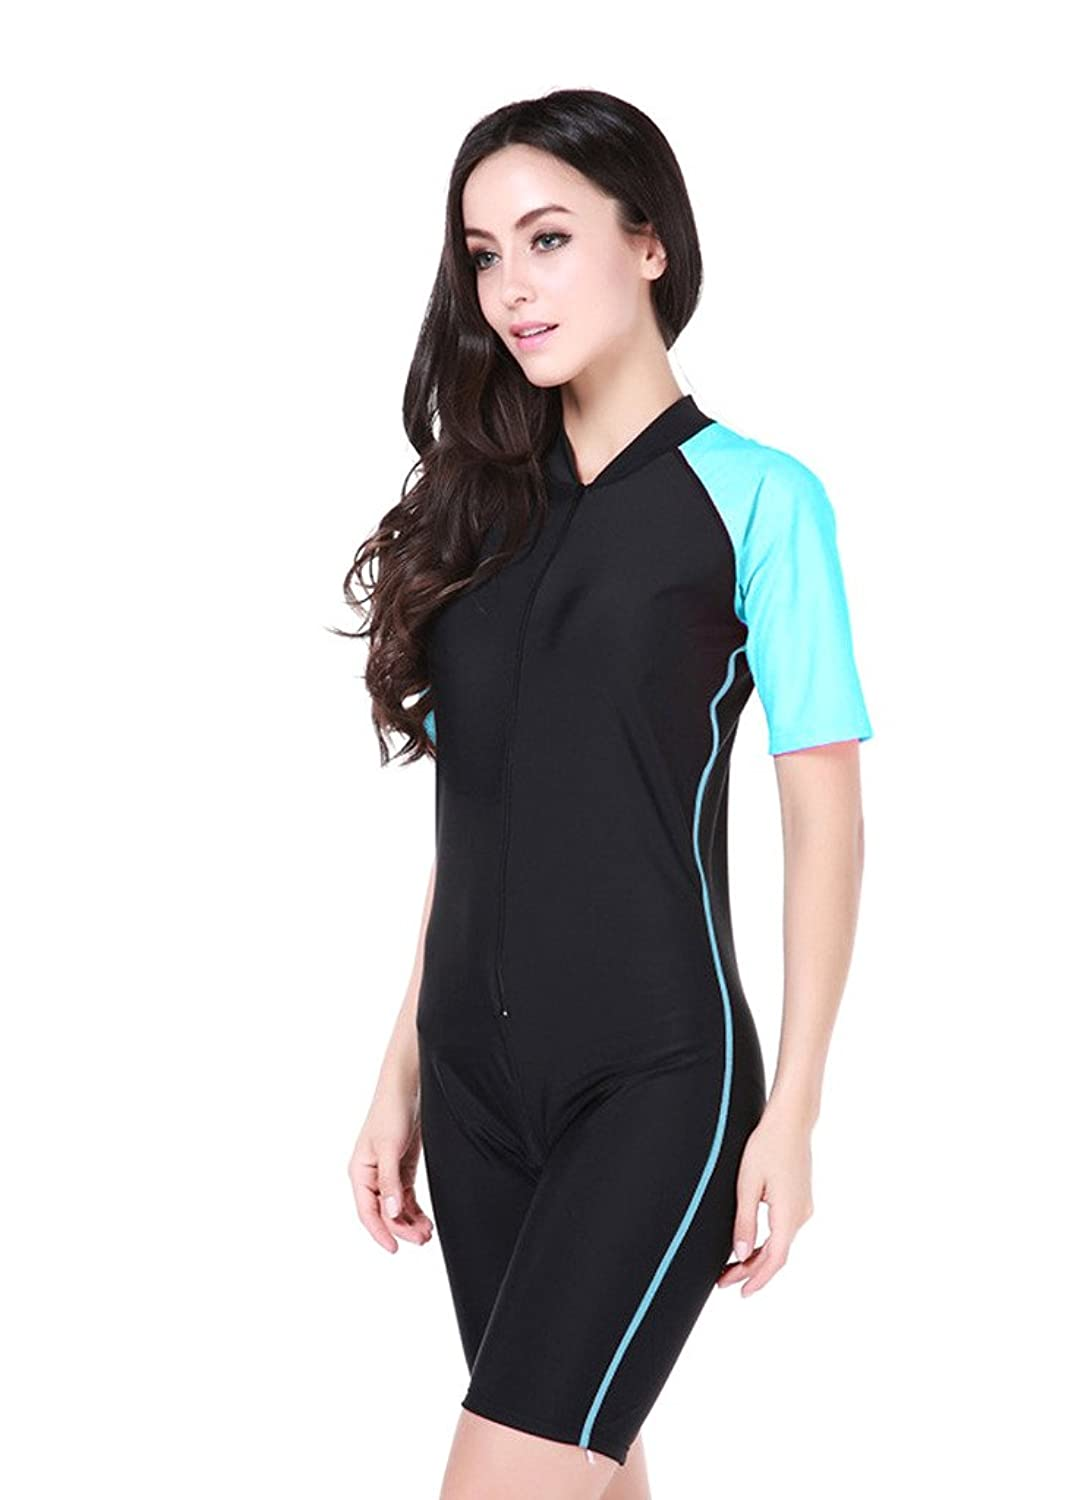 Full Body Leg swimsuit with sleeves 24: Amazon.co.uk: Sports ...